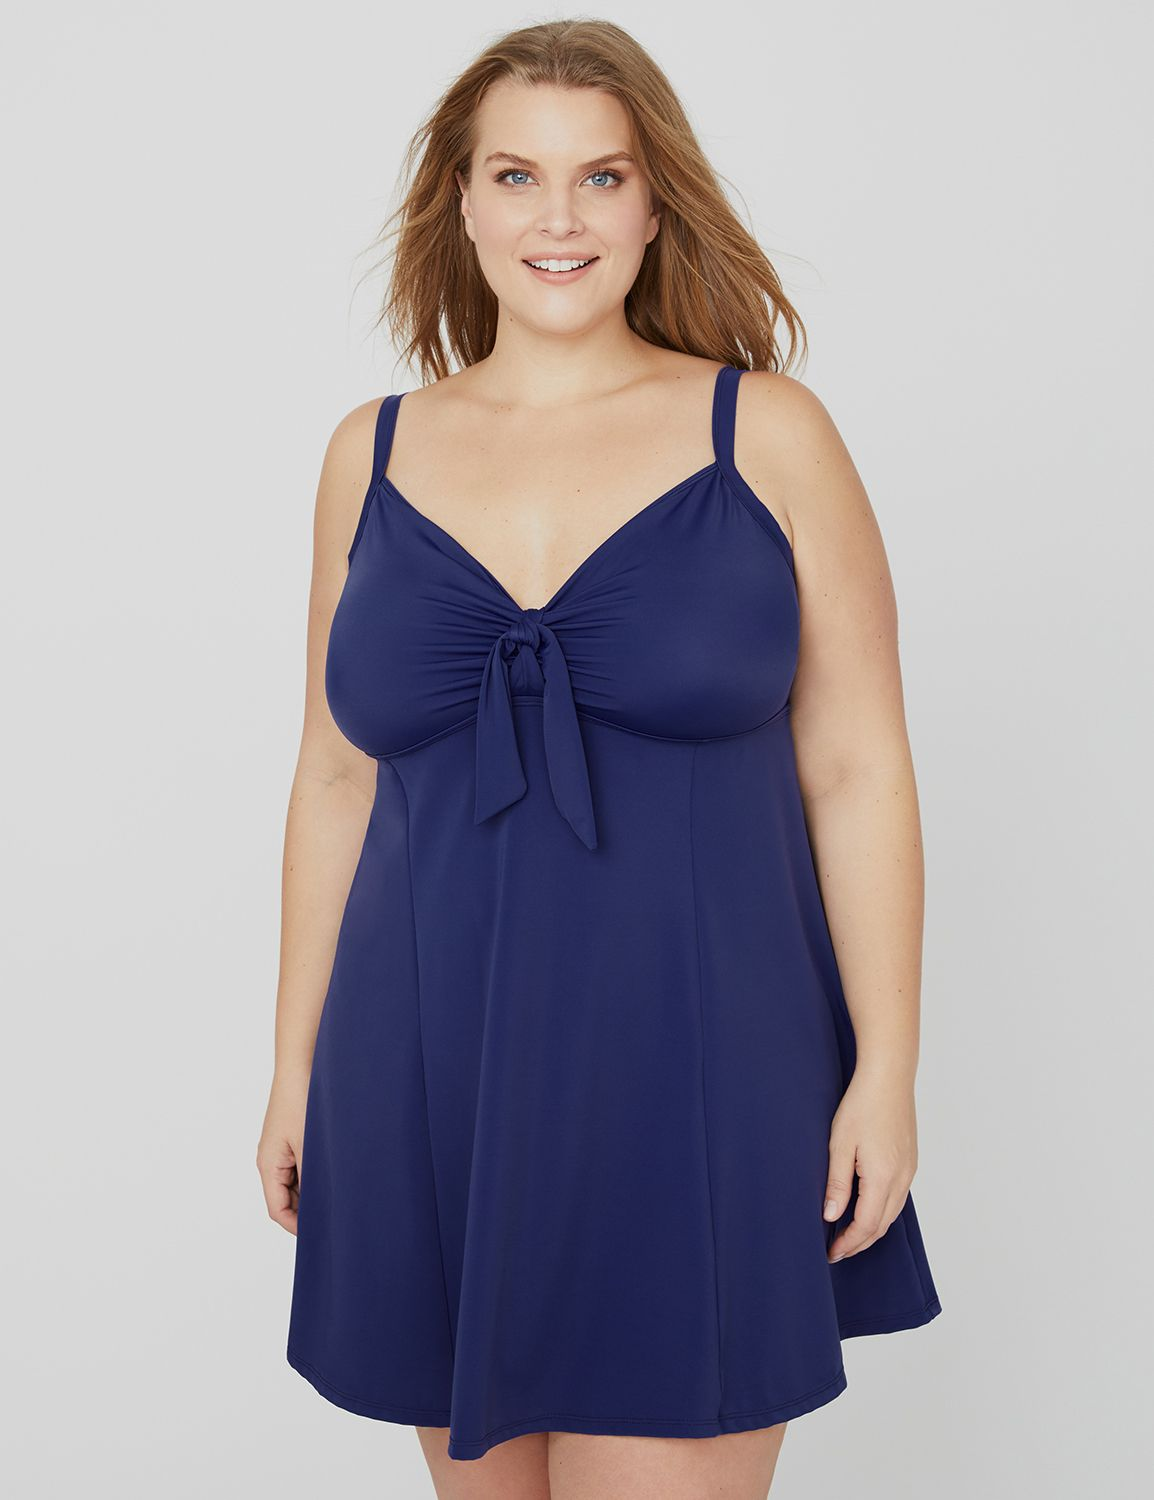 Sugar Hollow Swimdress Tie Front Swim Dress MP-300094186